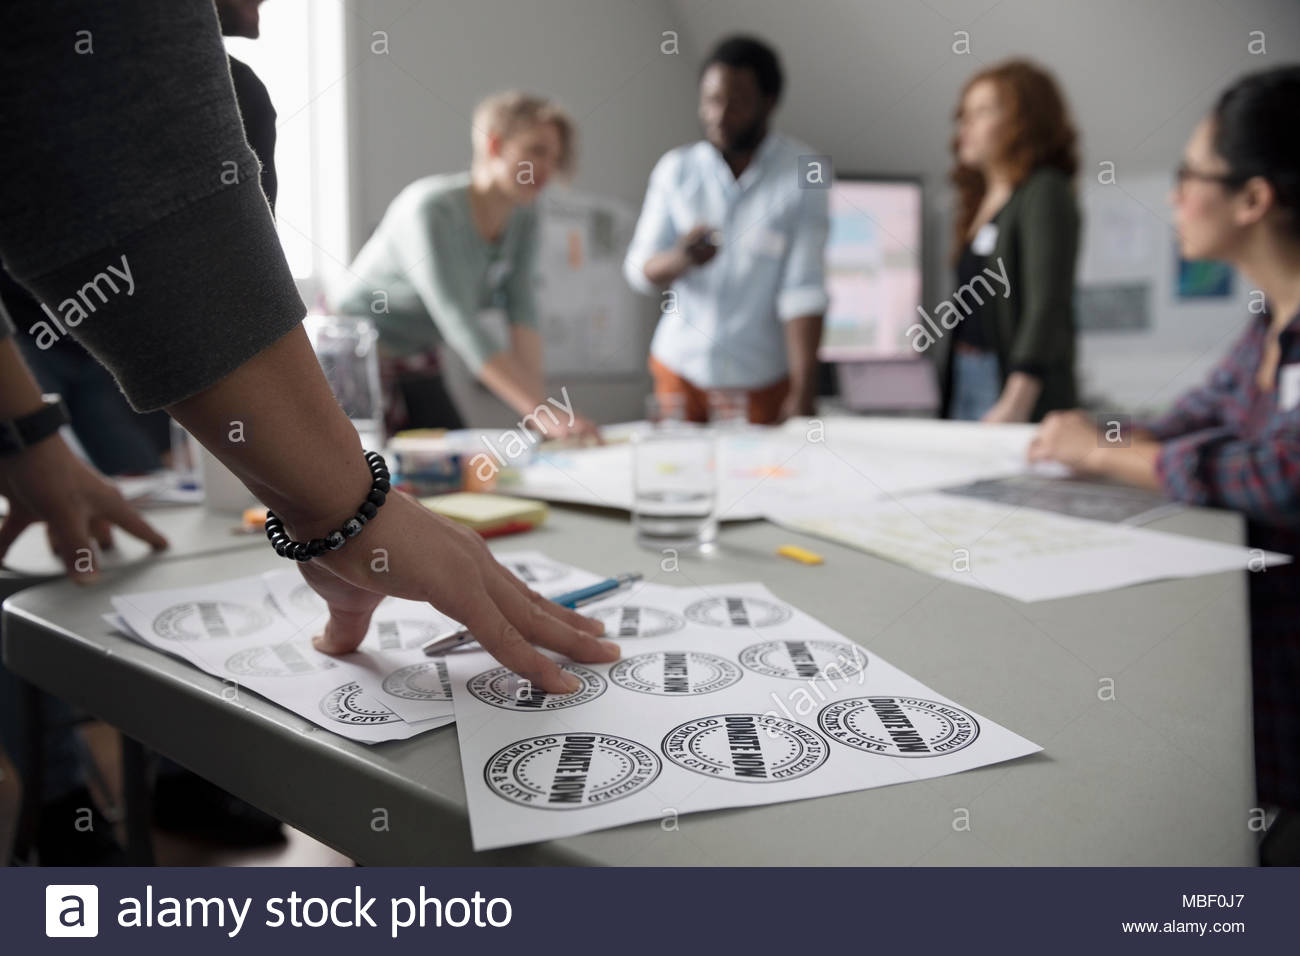 Activists preparing fundraiser donation stickers - Stock Image